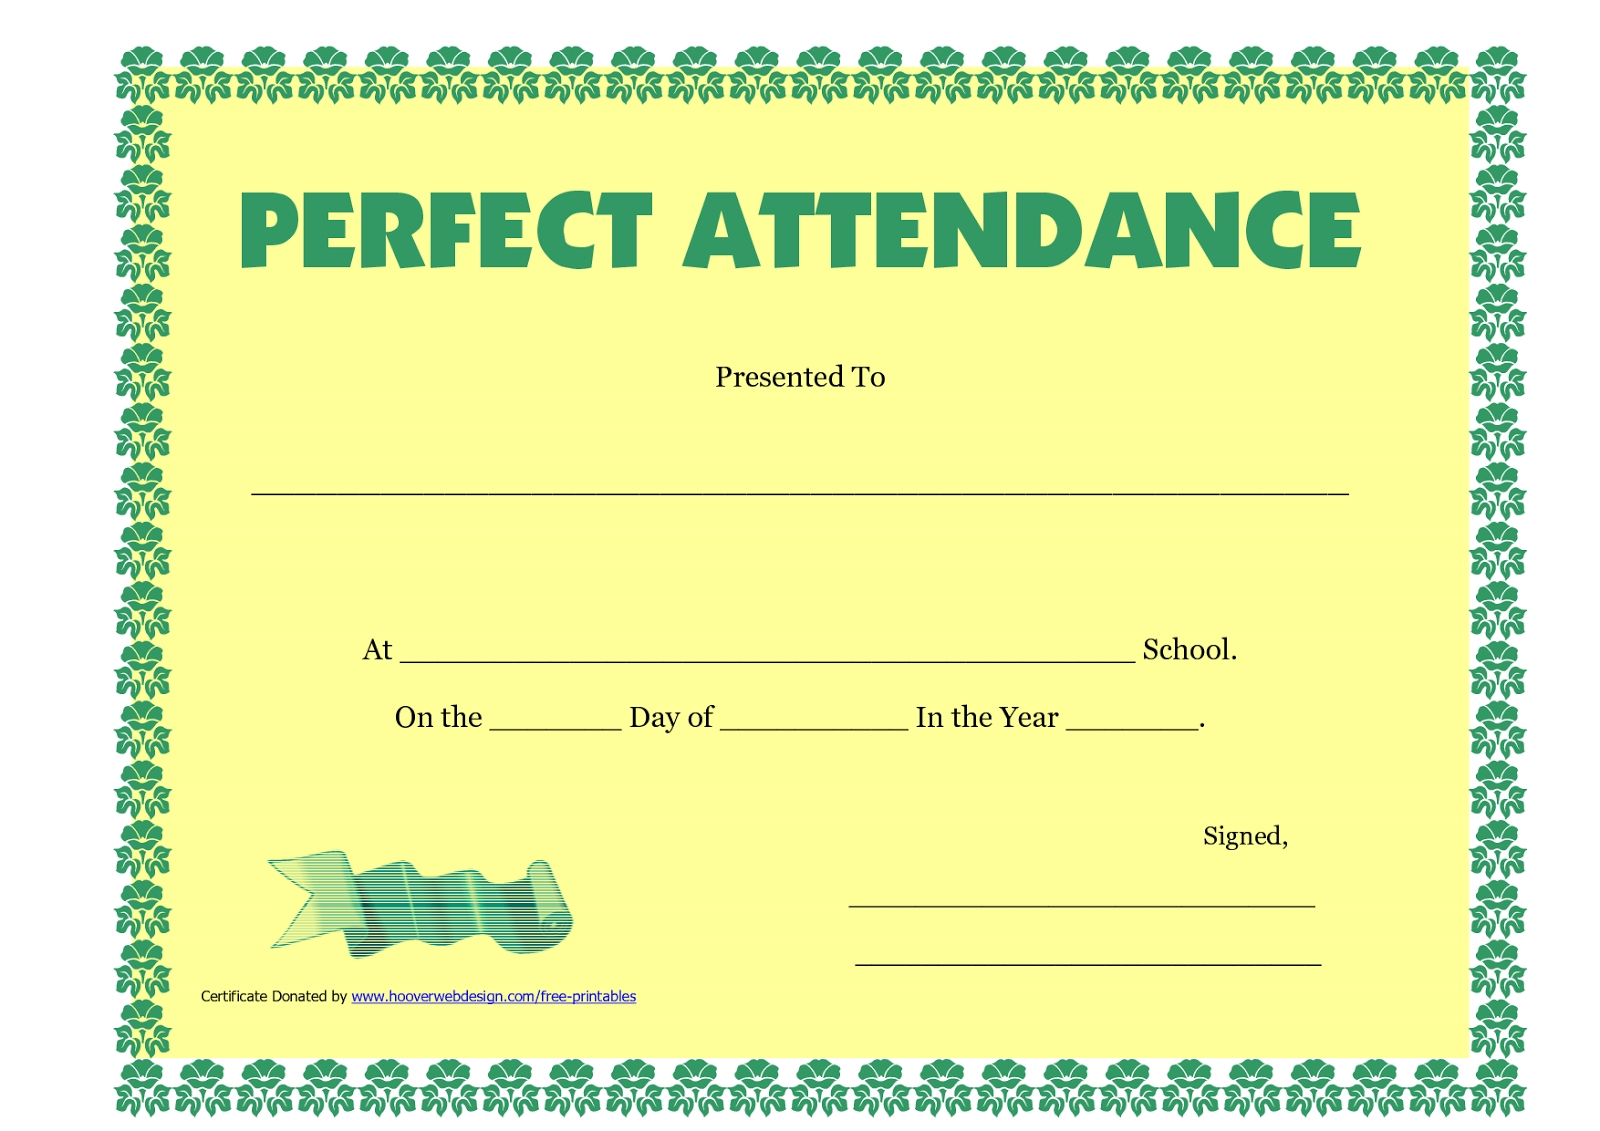 Perfect Attendance Certificate Printable Free Download D Templates